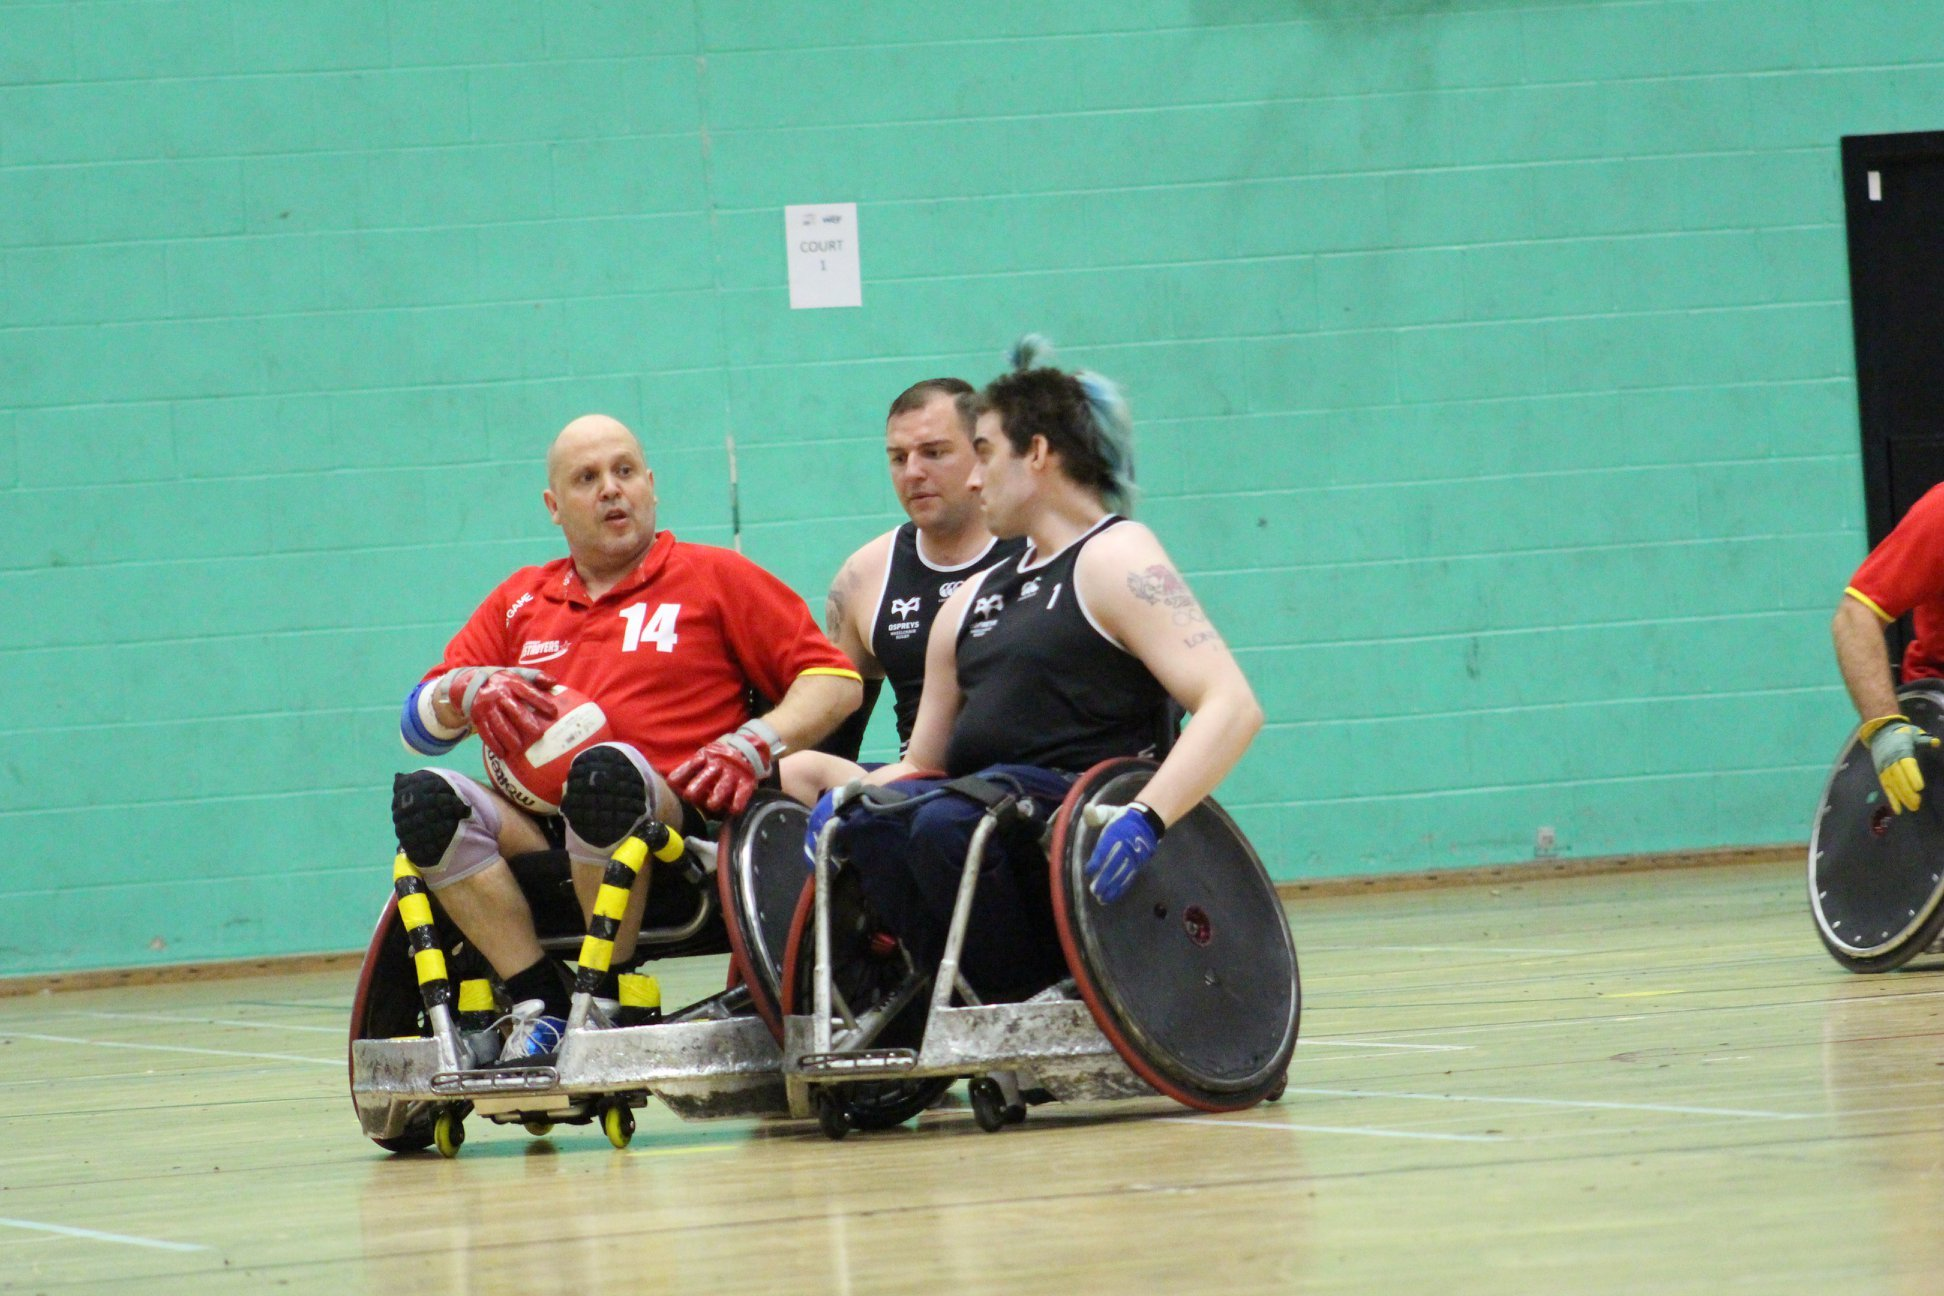 Nick Coombs, chairman of the Dorset Destroyers, in action against David Anthony (ex-Team GB) and Stevie Boulton (Invictus UK Team)